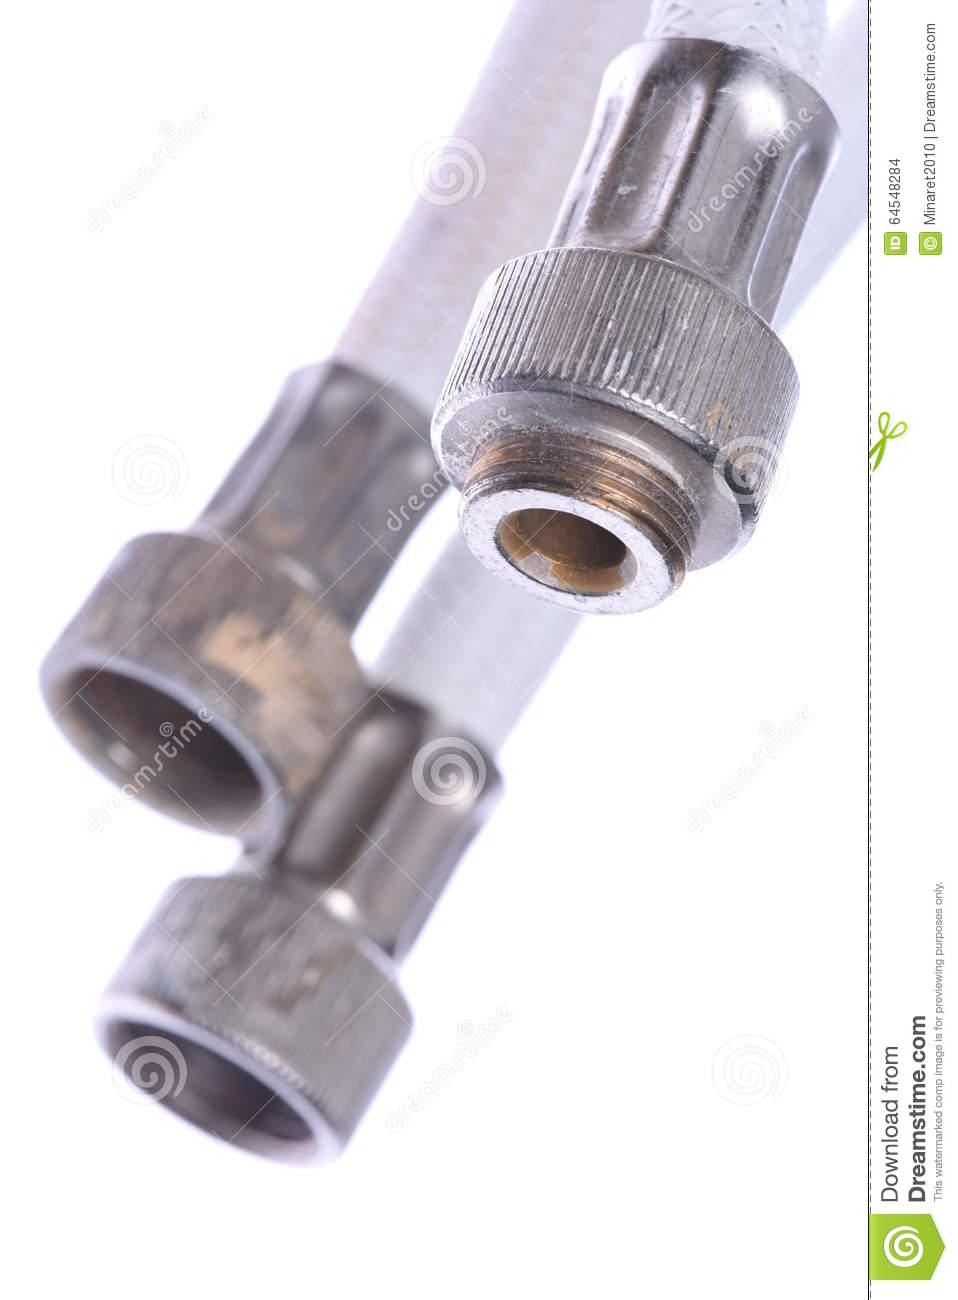 Old chrome faucet and water pipeline royalty free stock for What are old plumbing pipes made of